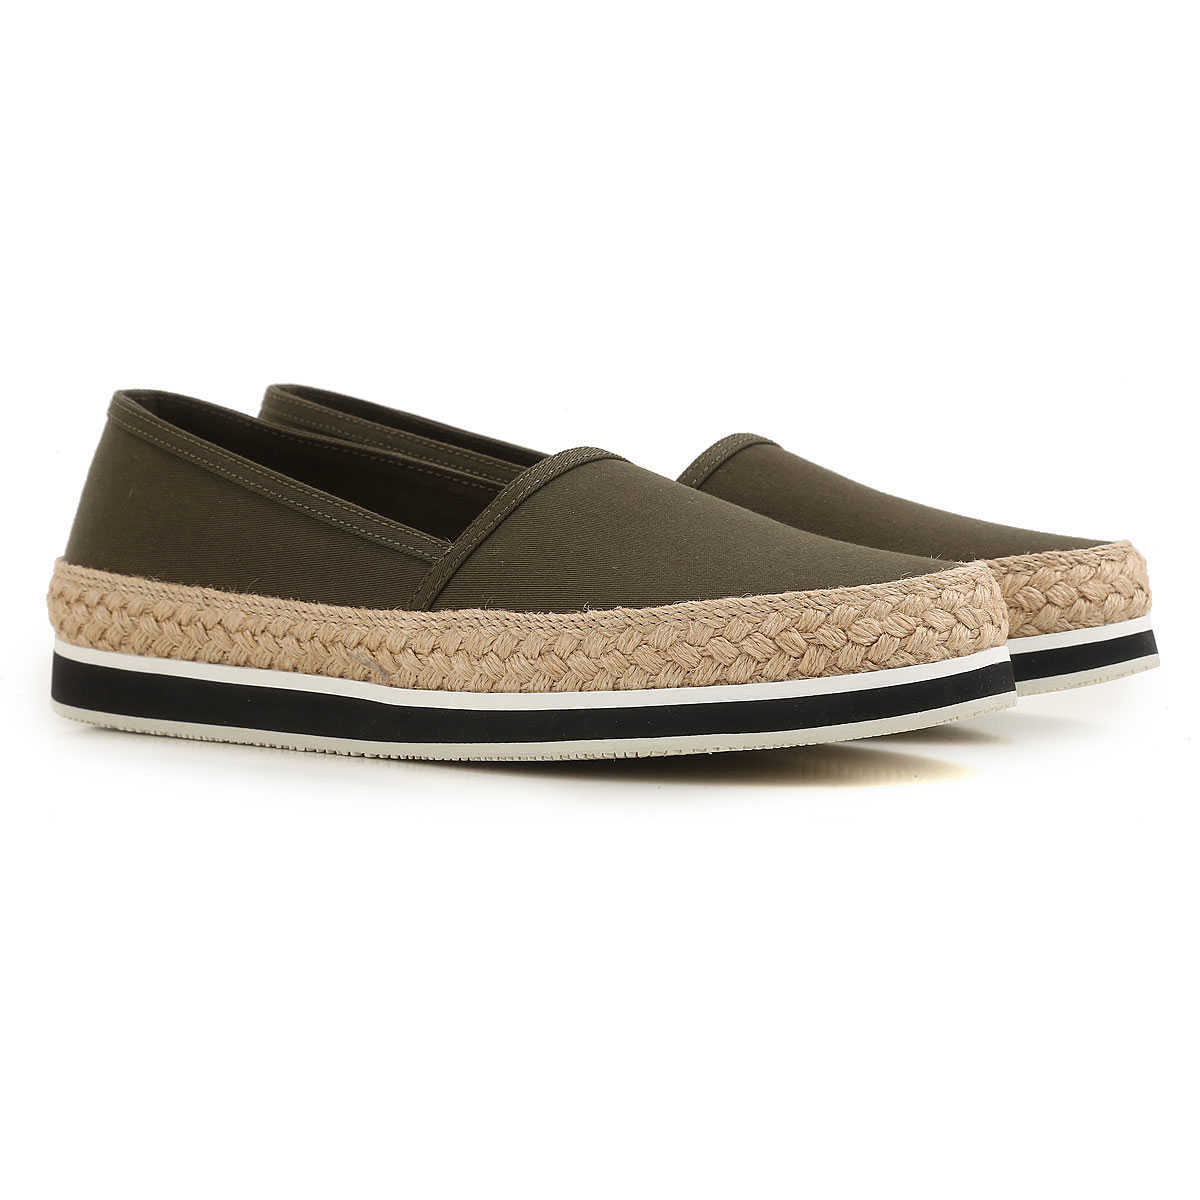 Prada Slip on Sneakers for Women in Outlet Military Green Canada - GOOFASH - Womens SNEAKER